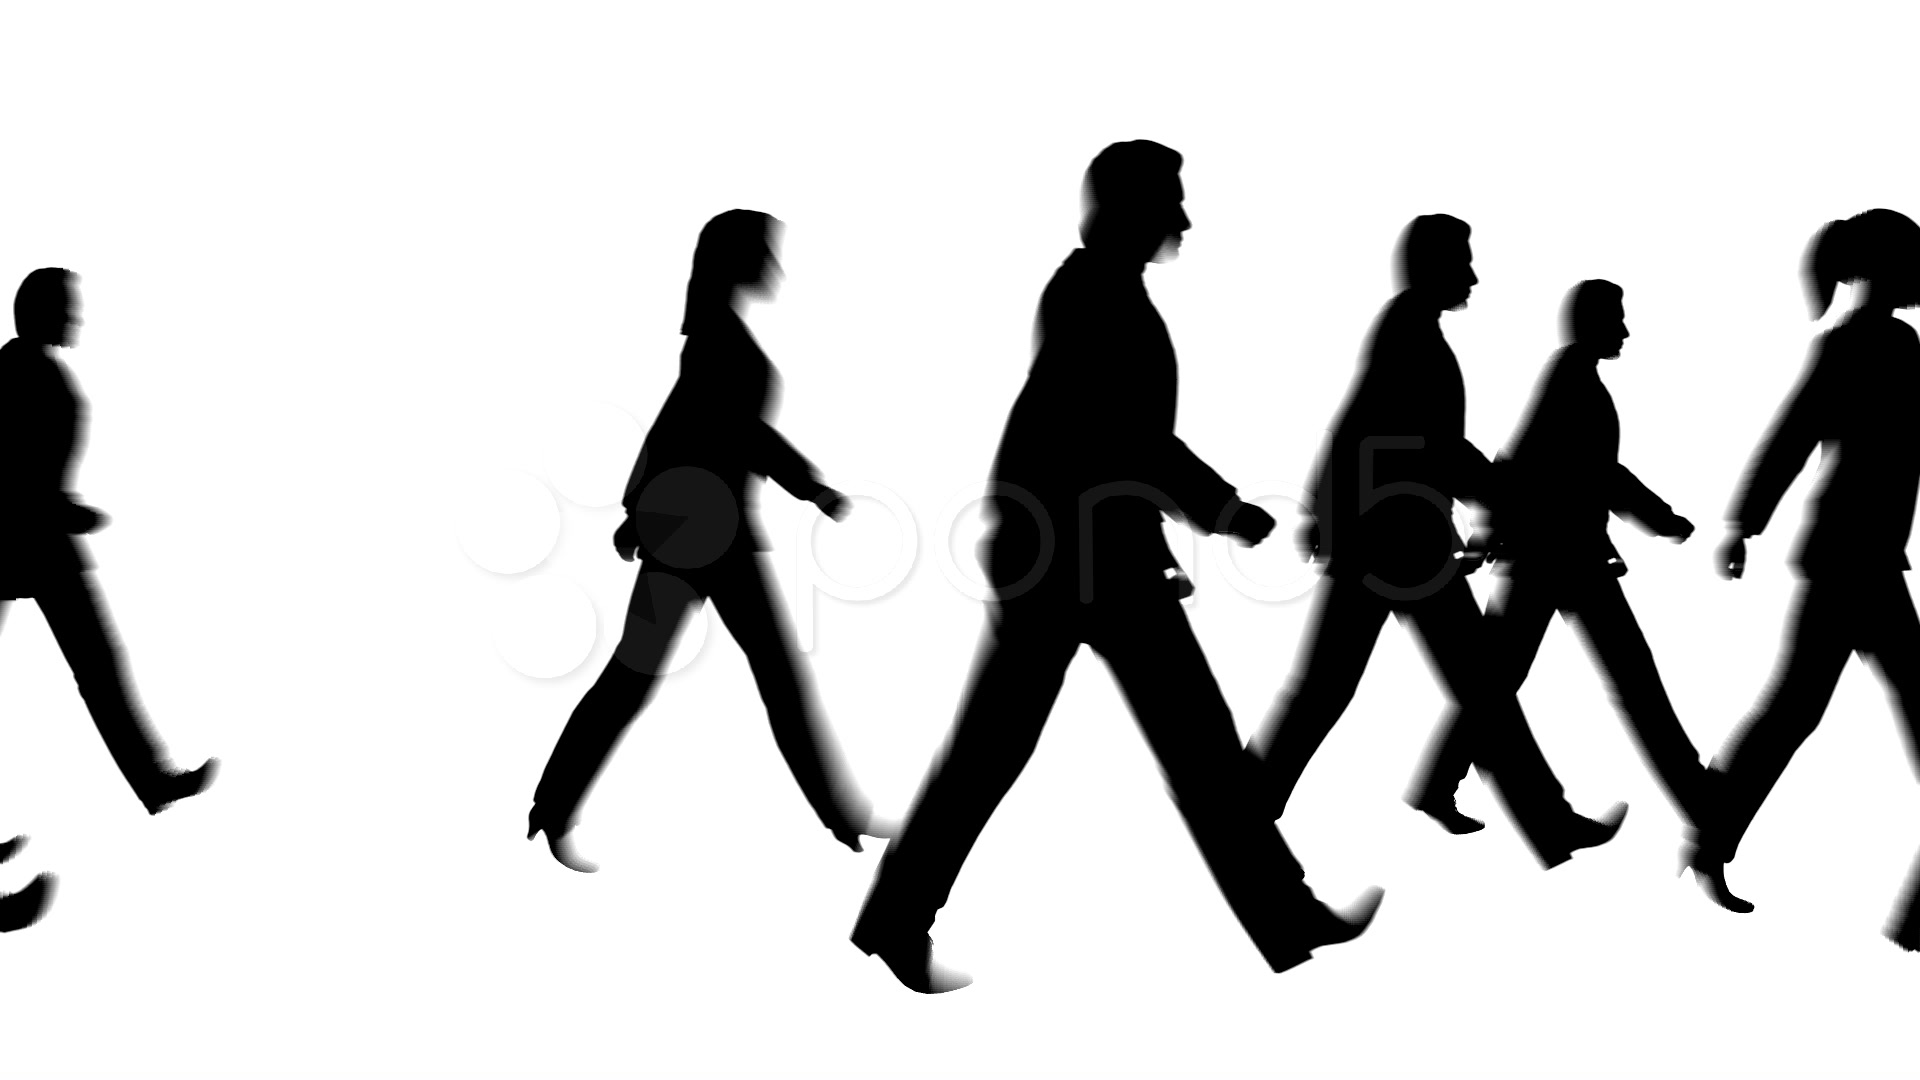 Silhouette People Walking Clipart - Clipart Suggest